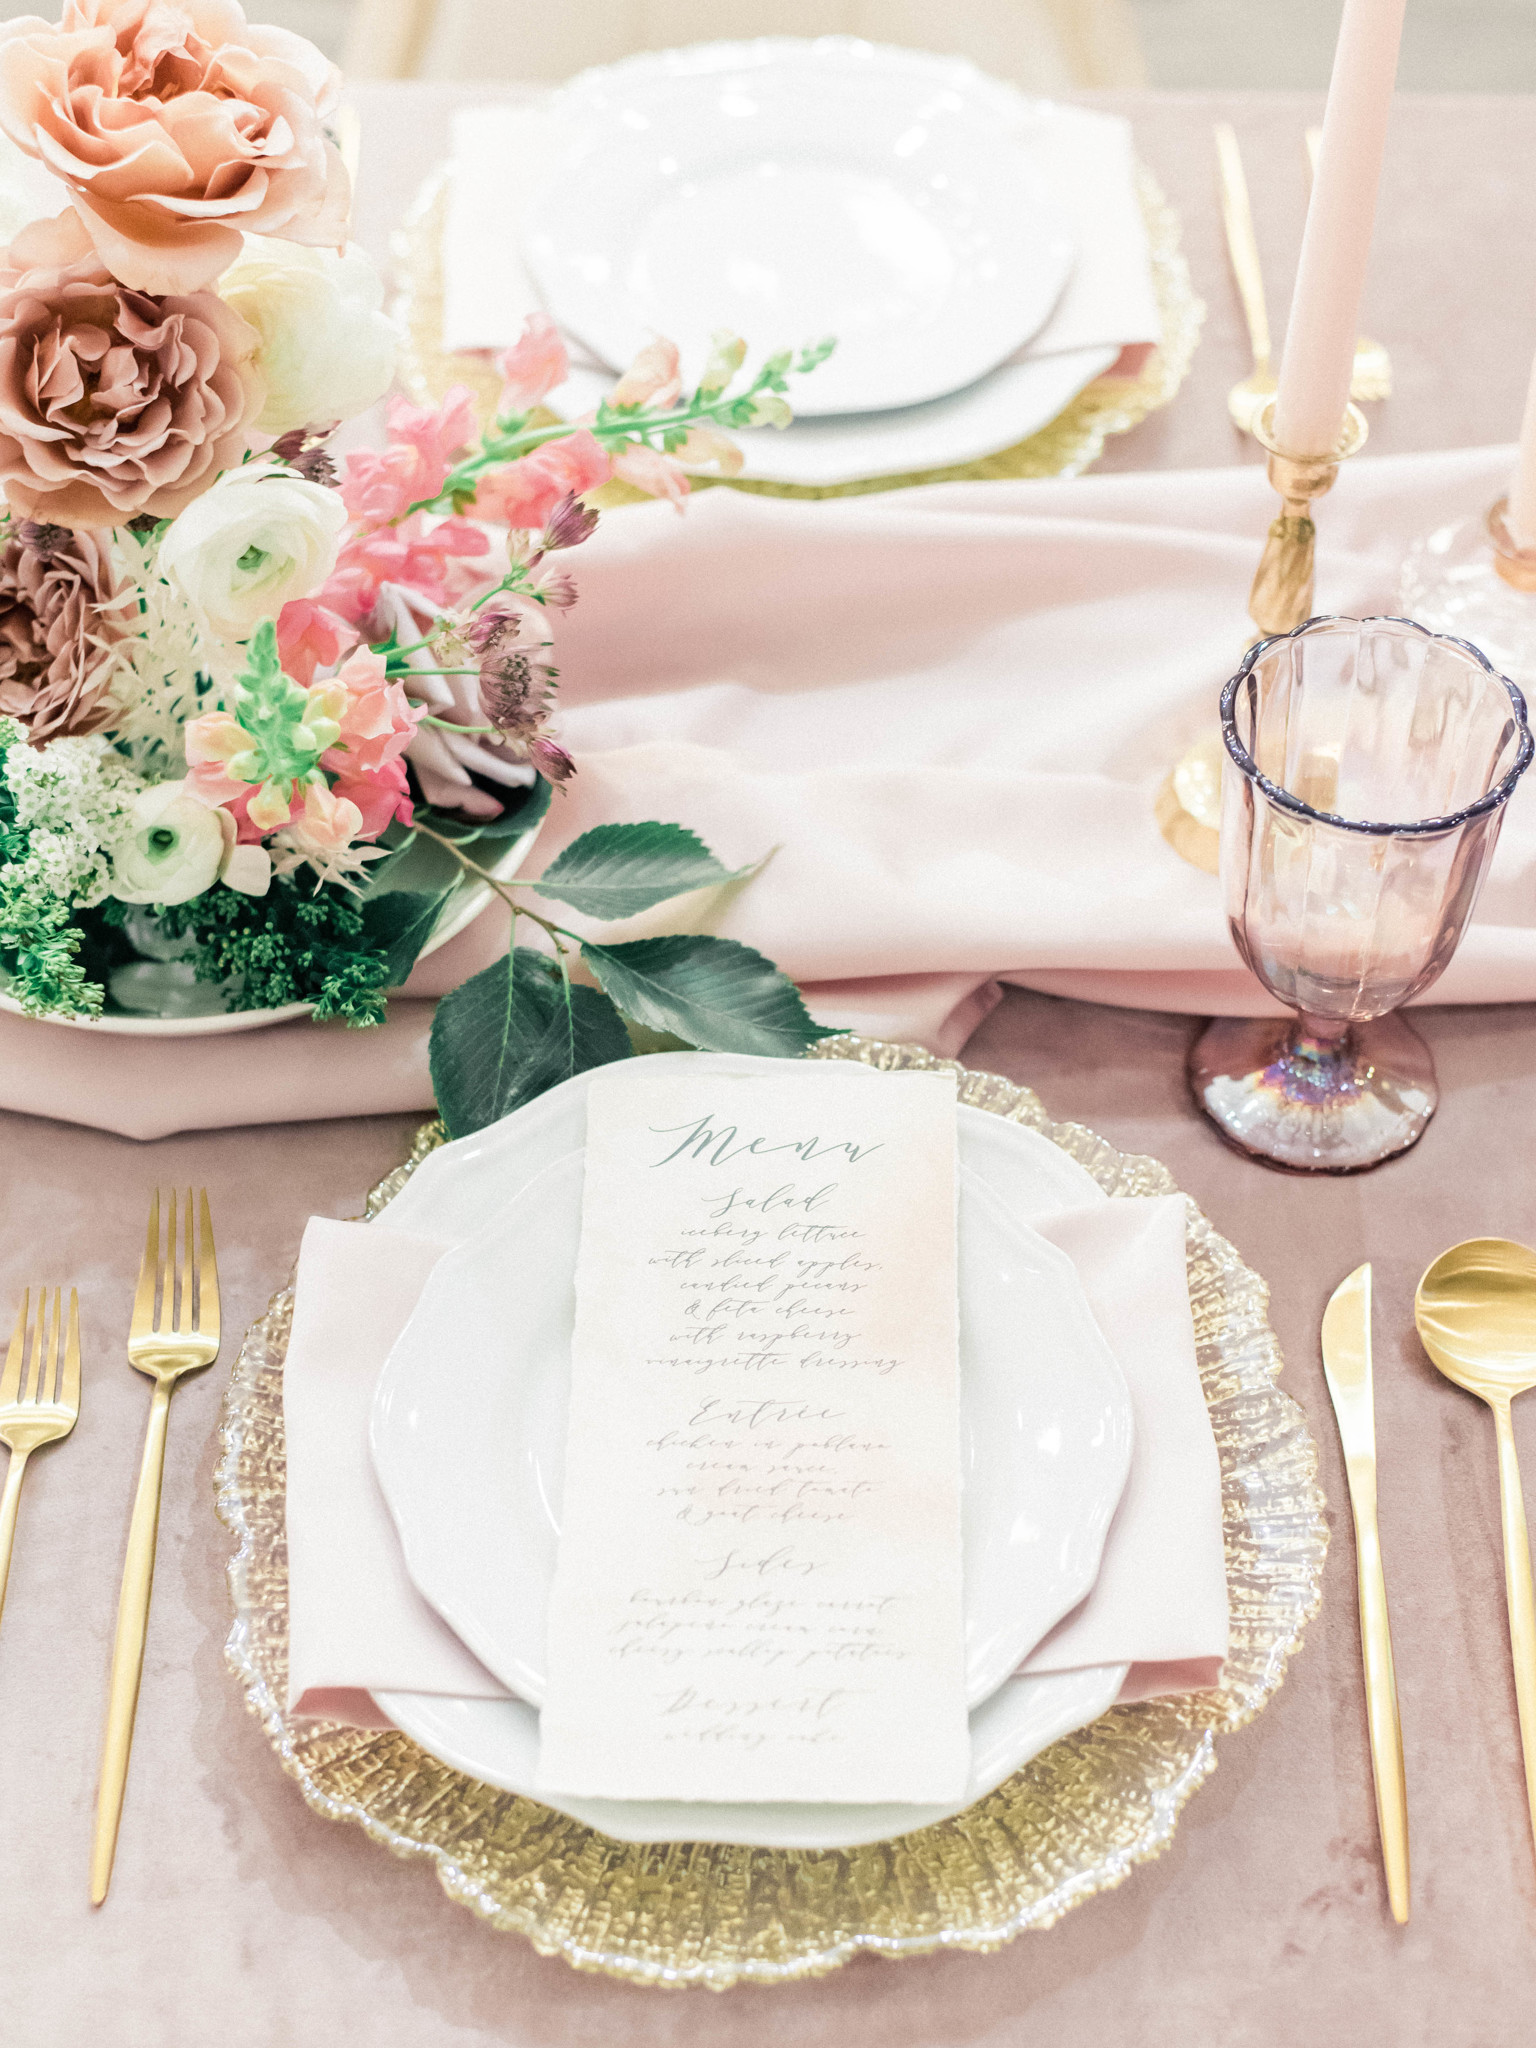 Mauve and gold wedding table setting: Whimsical mauve wedding inspiration on Alexa Kay Events. See more romantic wedding ideas at alexakayevents.com!